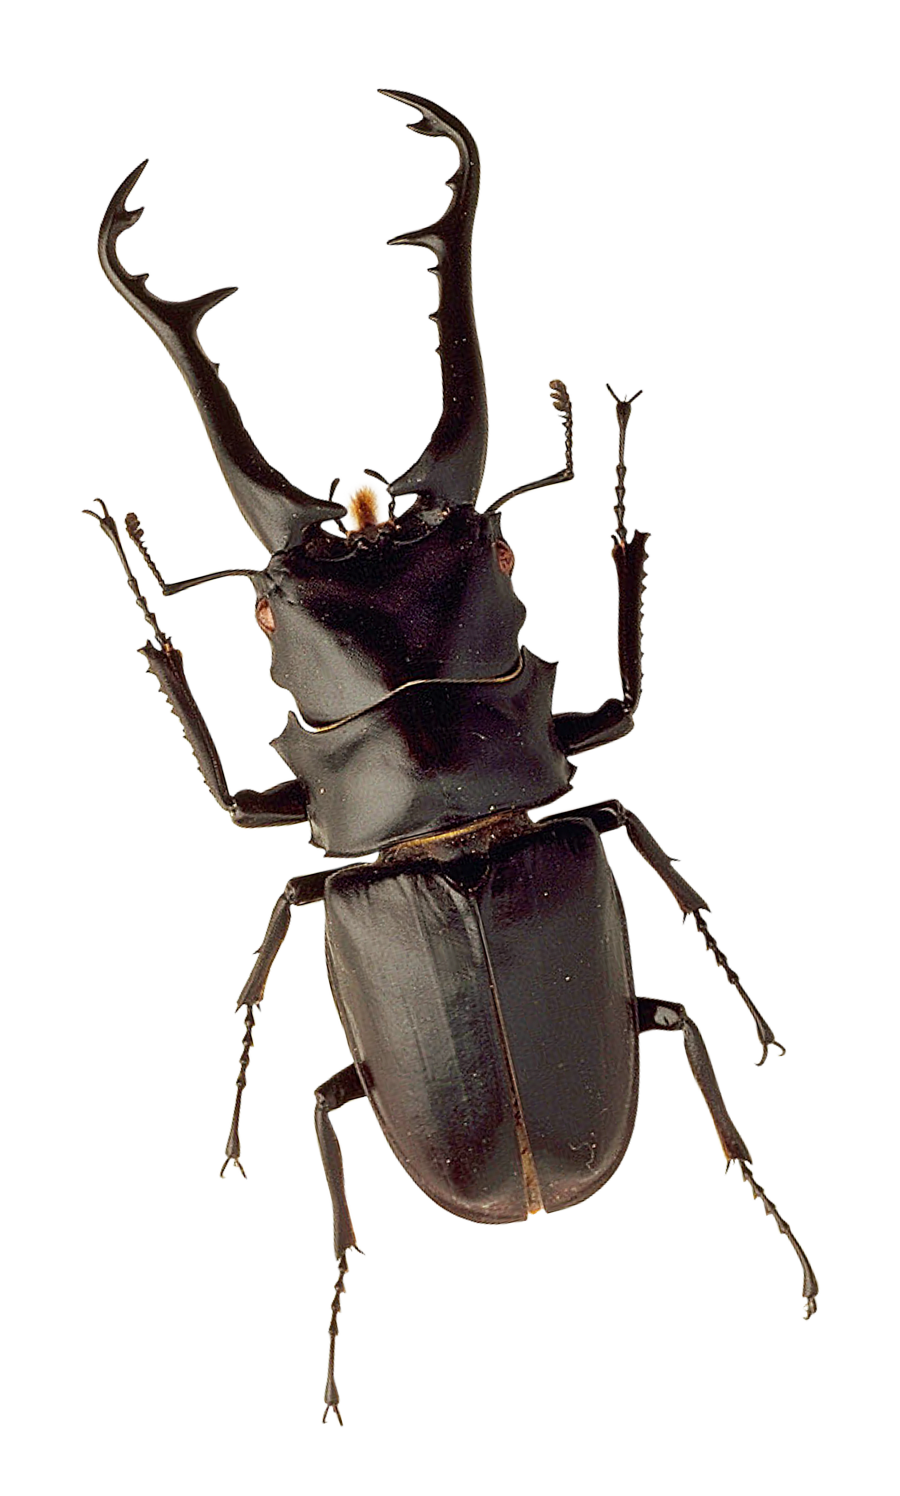 Insect png image purepng. Fly clipart beetle